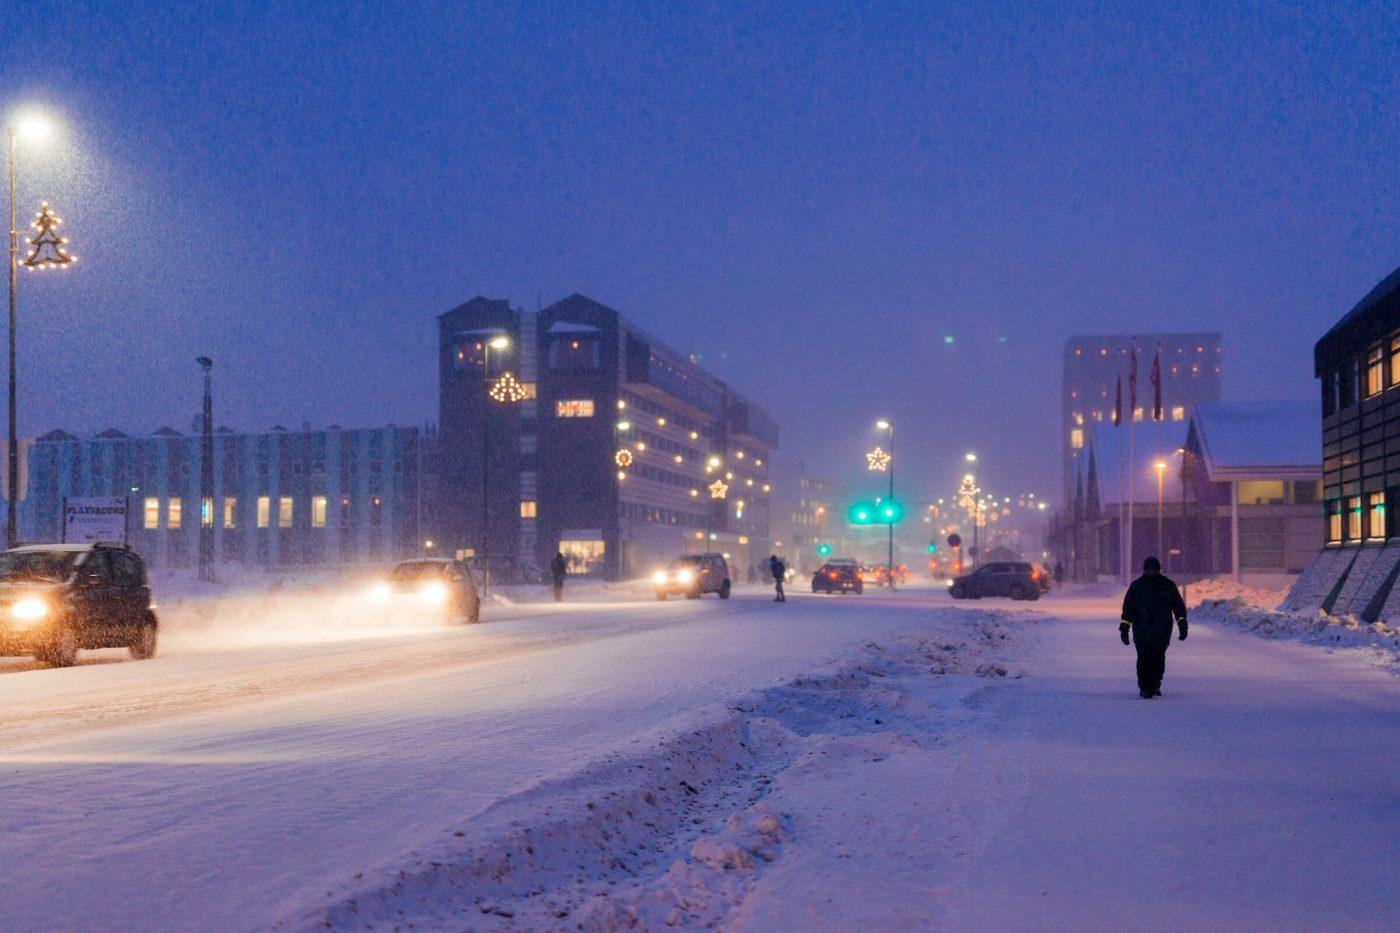 The main road of Nuuk during a snowy afternoon in December, decorated with christmas lights, by Rebecca Gustafsson